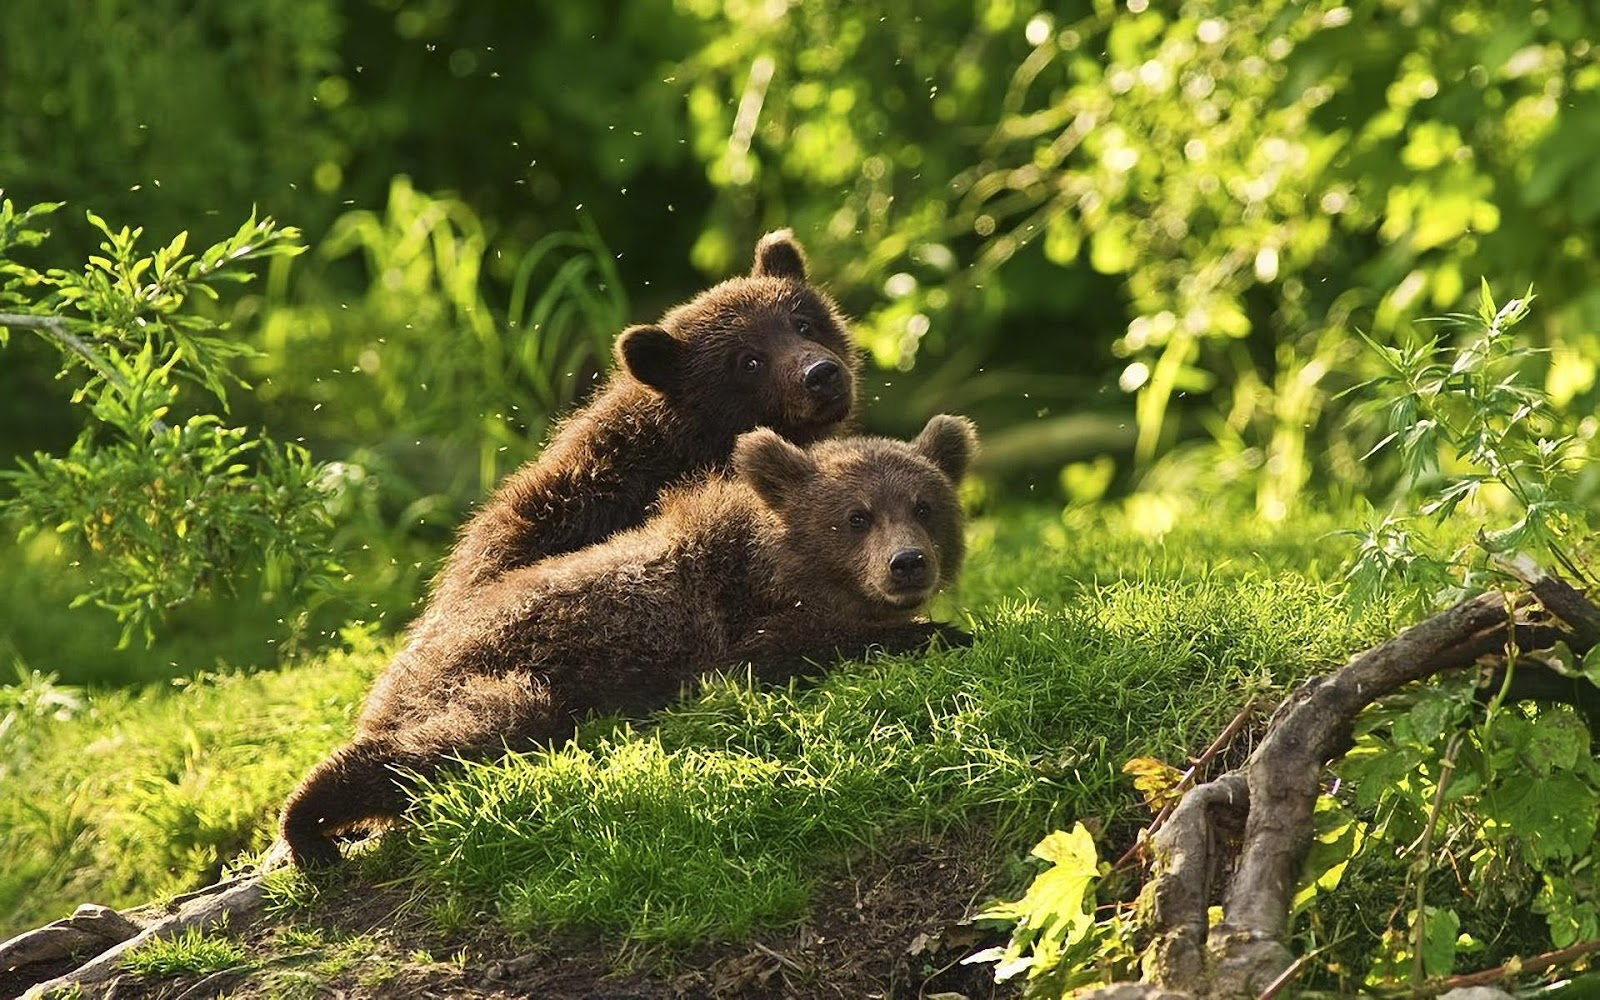 http://2.bp.blogspot.com/-l-VskYxUsVo/UNLZTMrHChI/AAAAAAAAJIQ/Ud8xyoSrQWg/s1600/photo-of-two-young-brown-bear-cubs-hd-bears-wallpaper.jpg